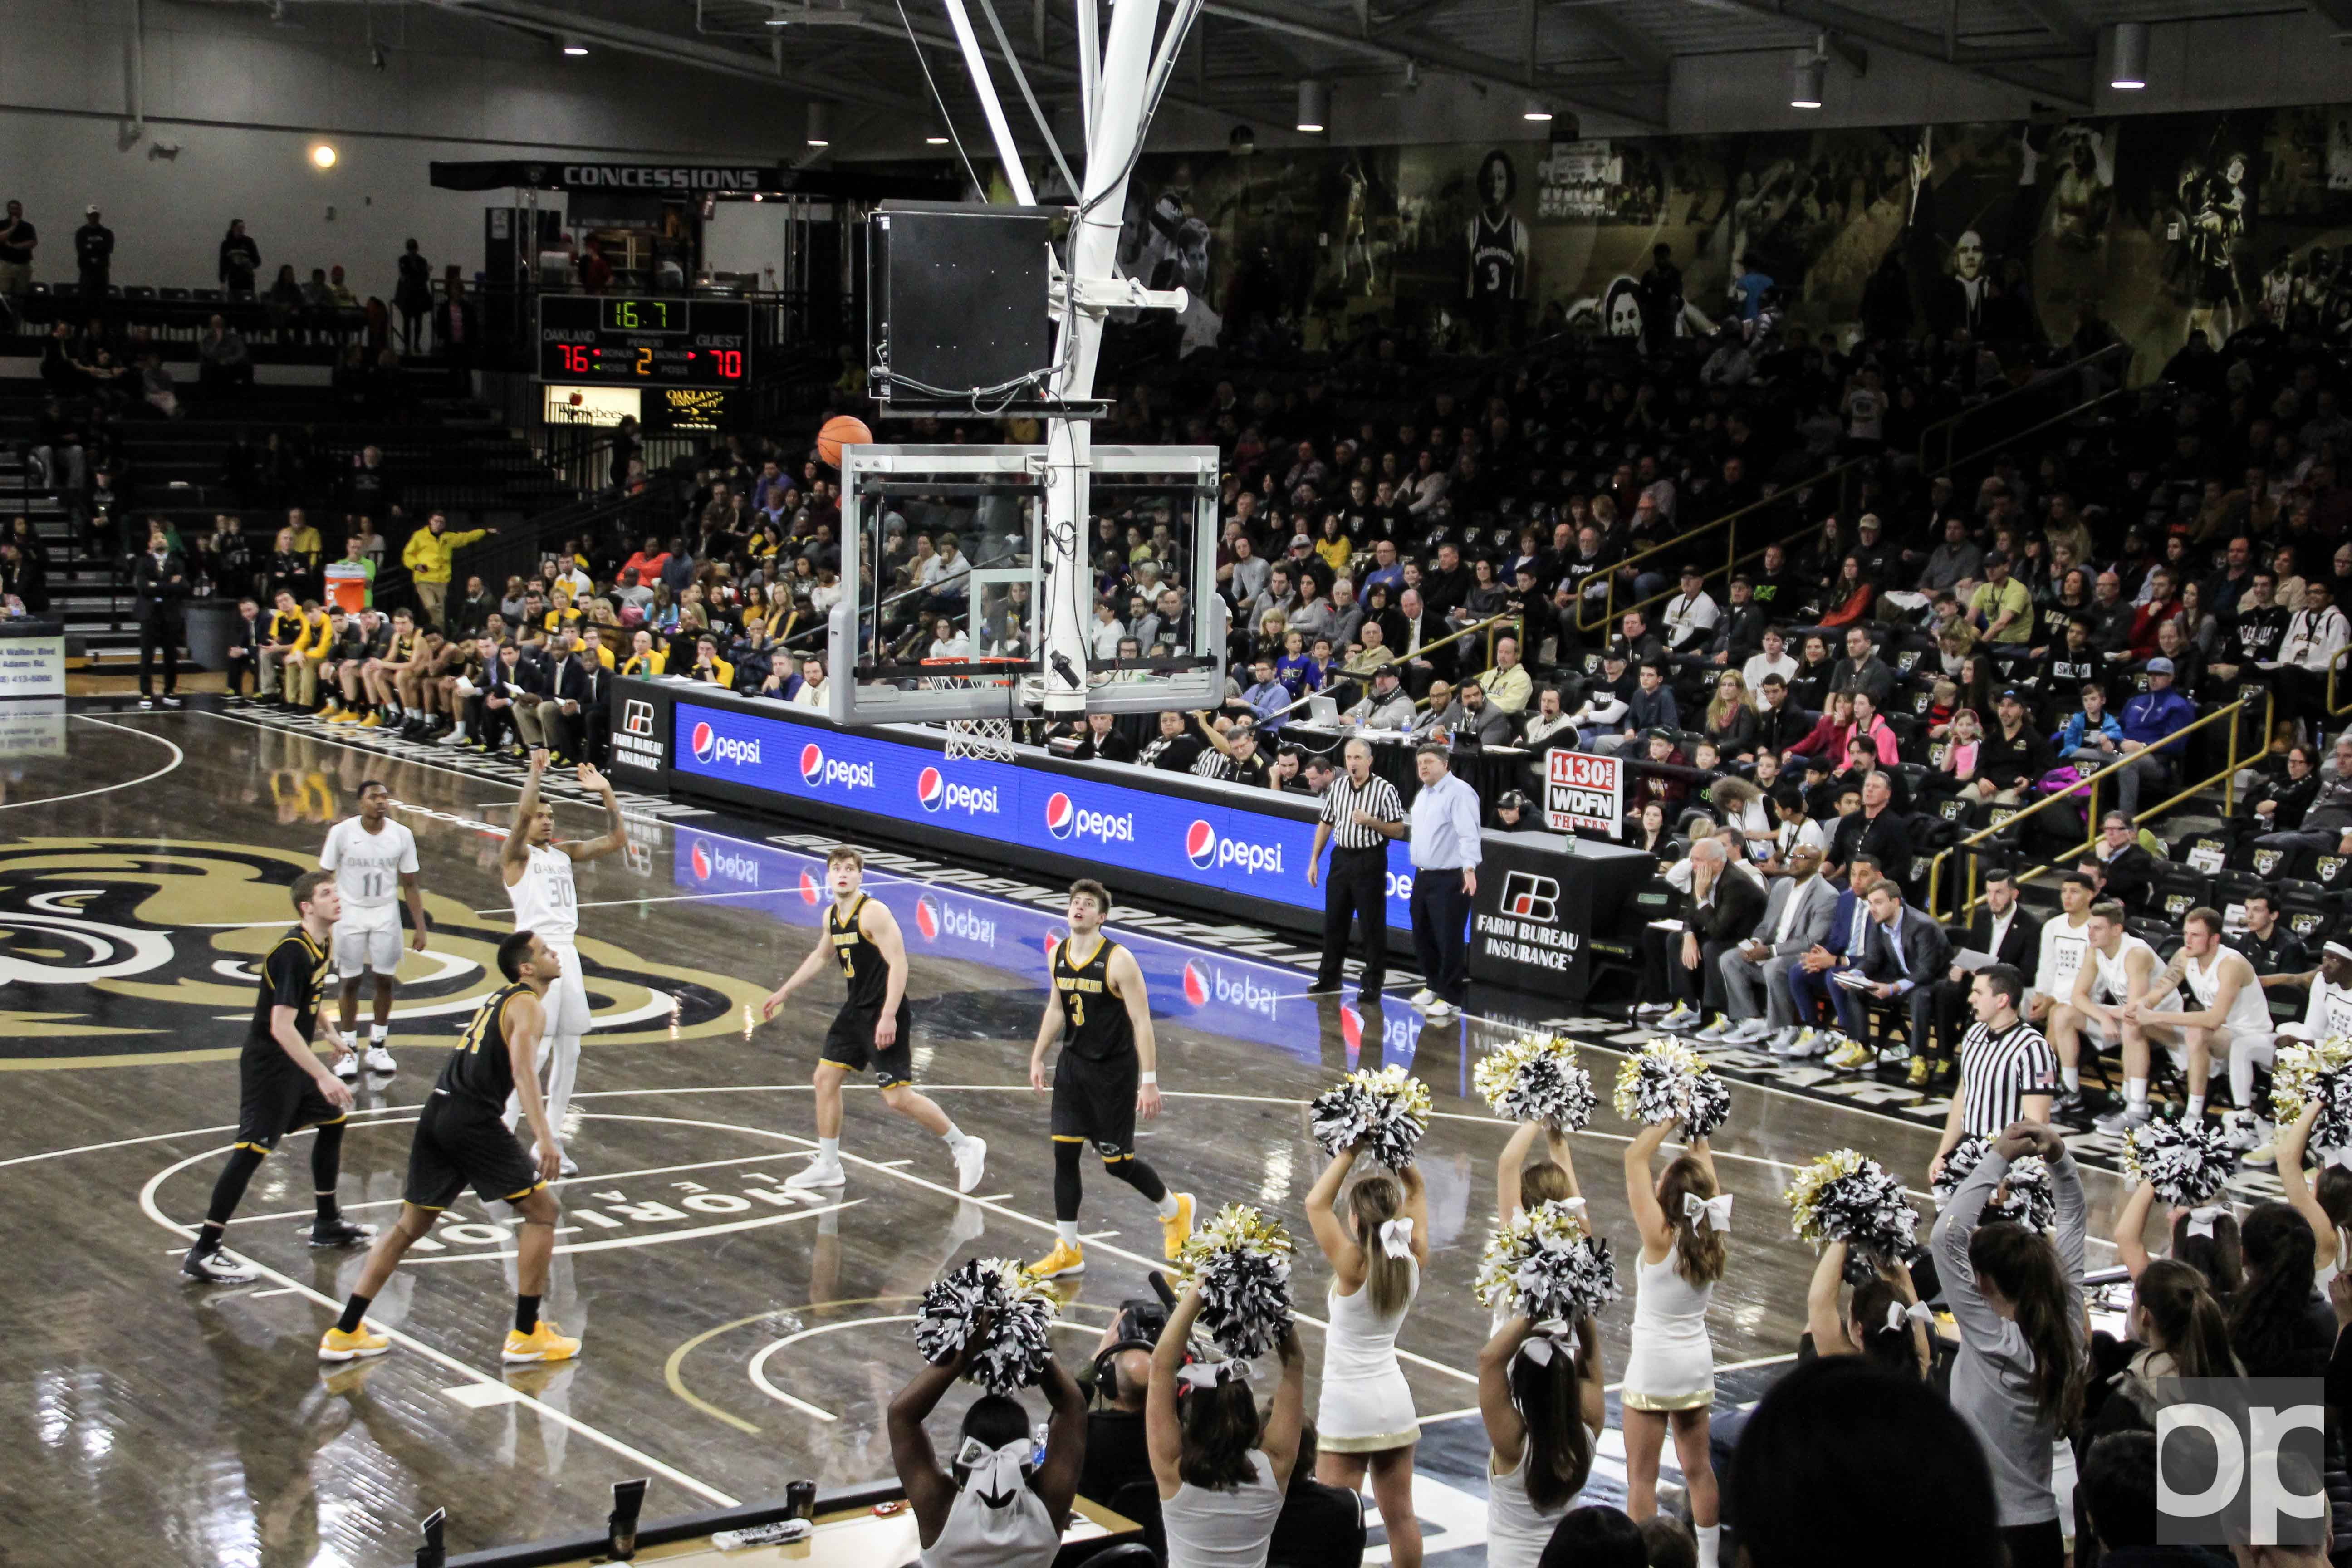 The Golden Grizzlies defeated the Panthers 79-70 in overtime on Sunday, Jan. 29 at the O'rena.